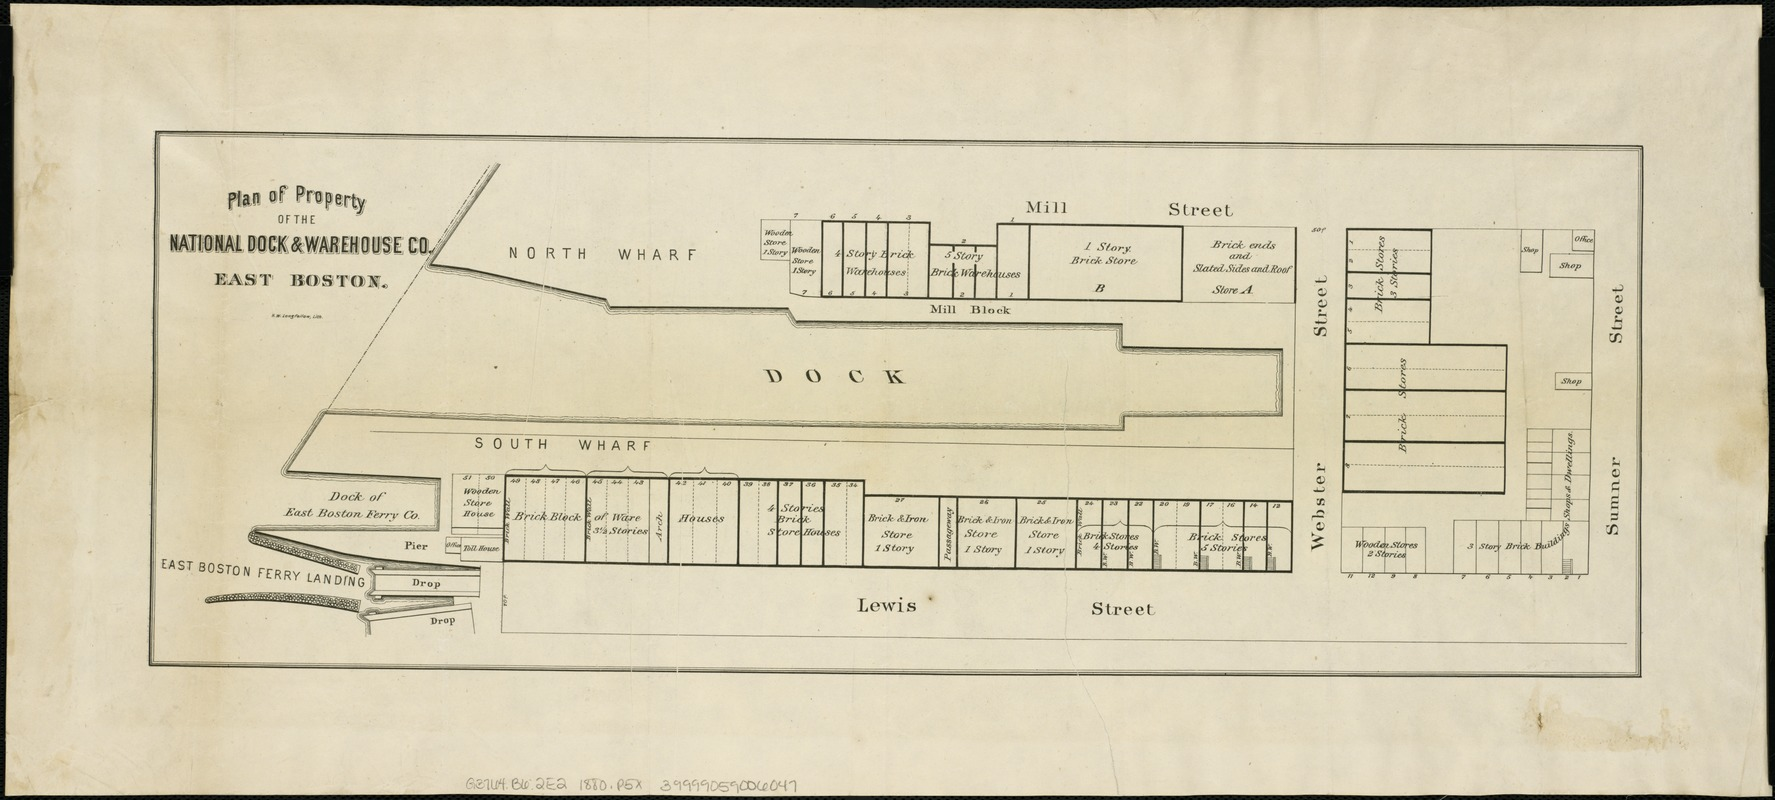 Plan of property of the National Dock & Warehouse Co. East Boston